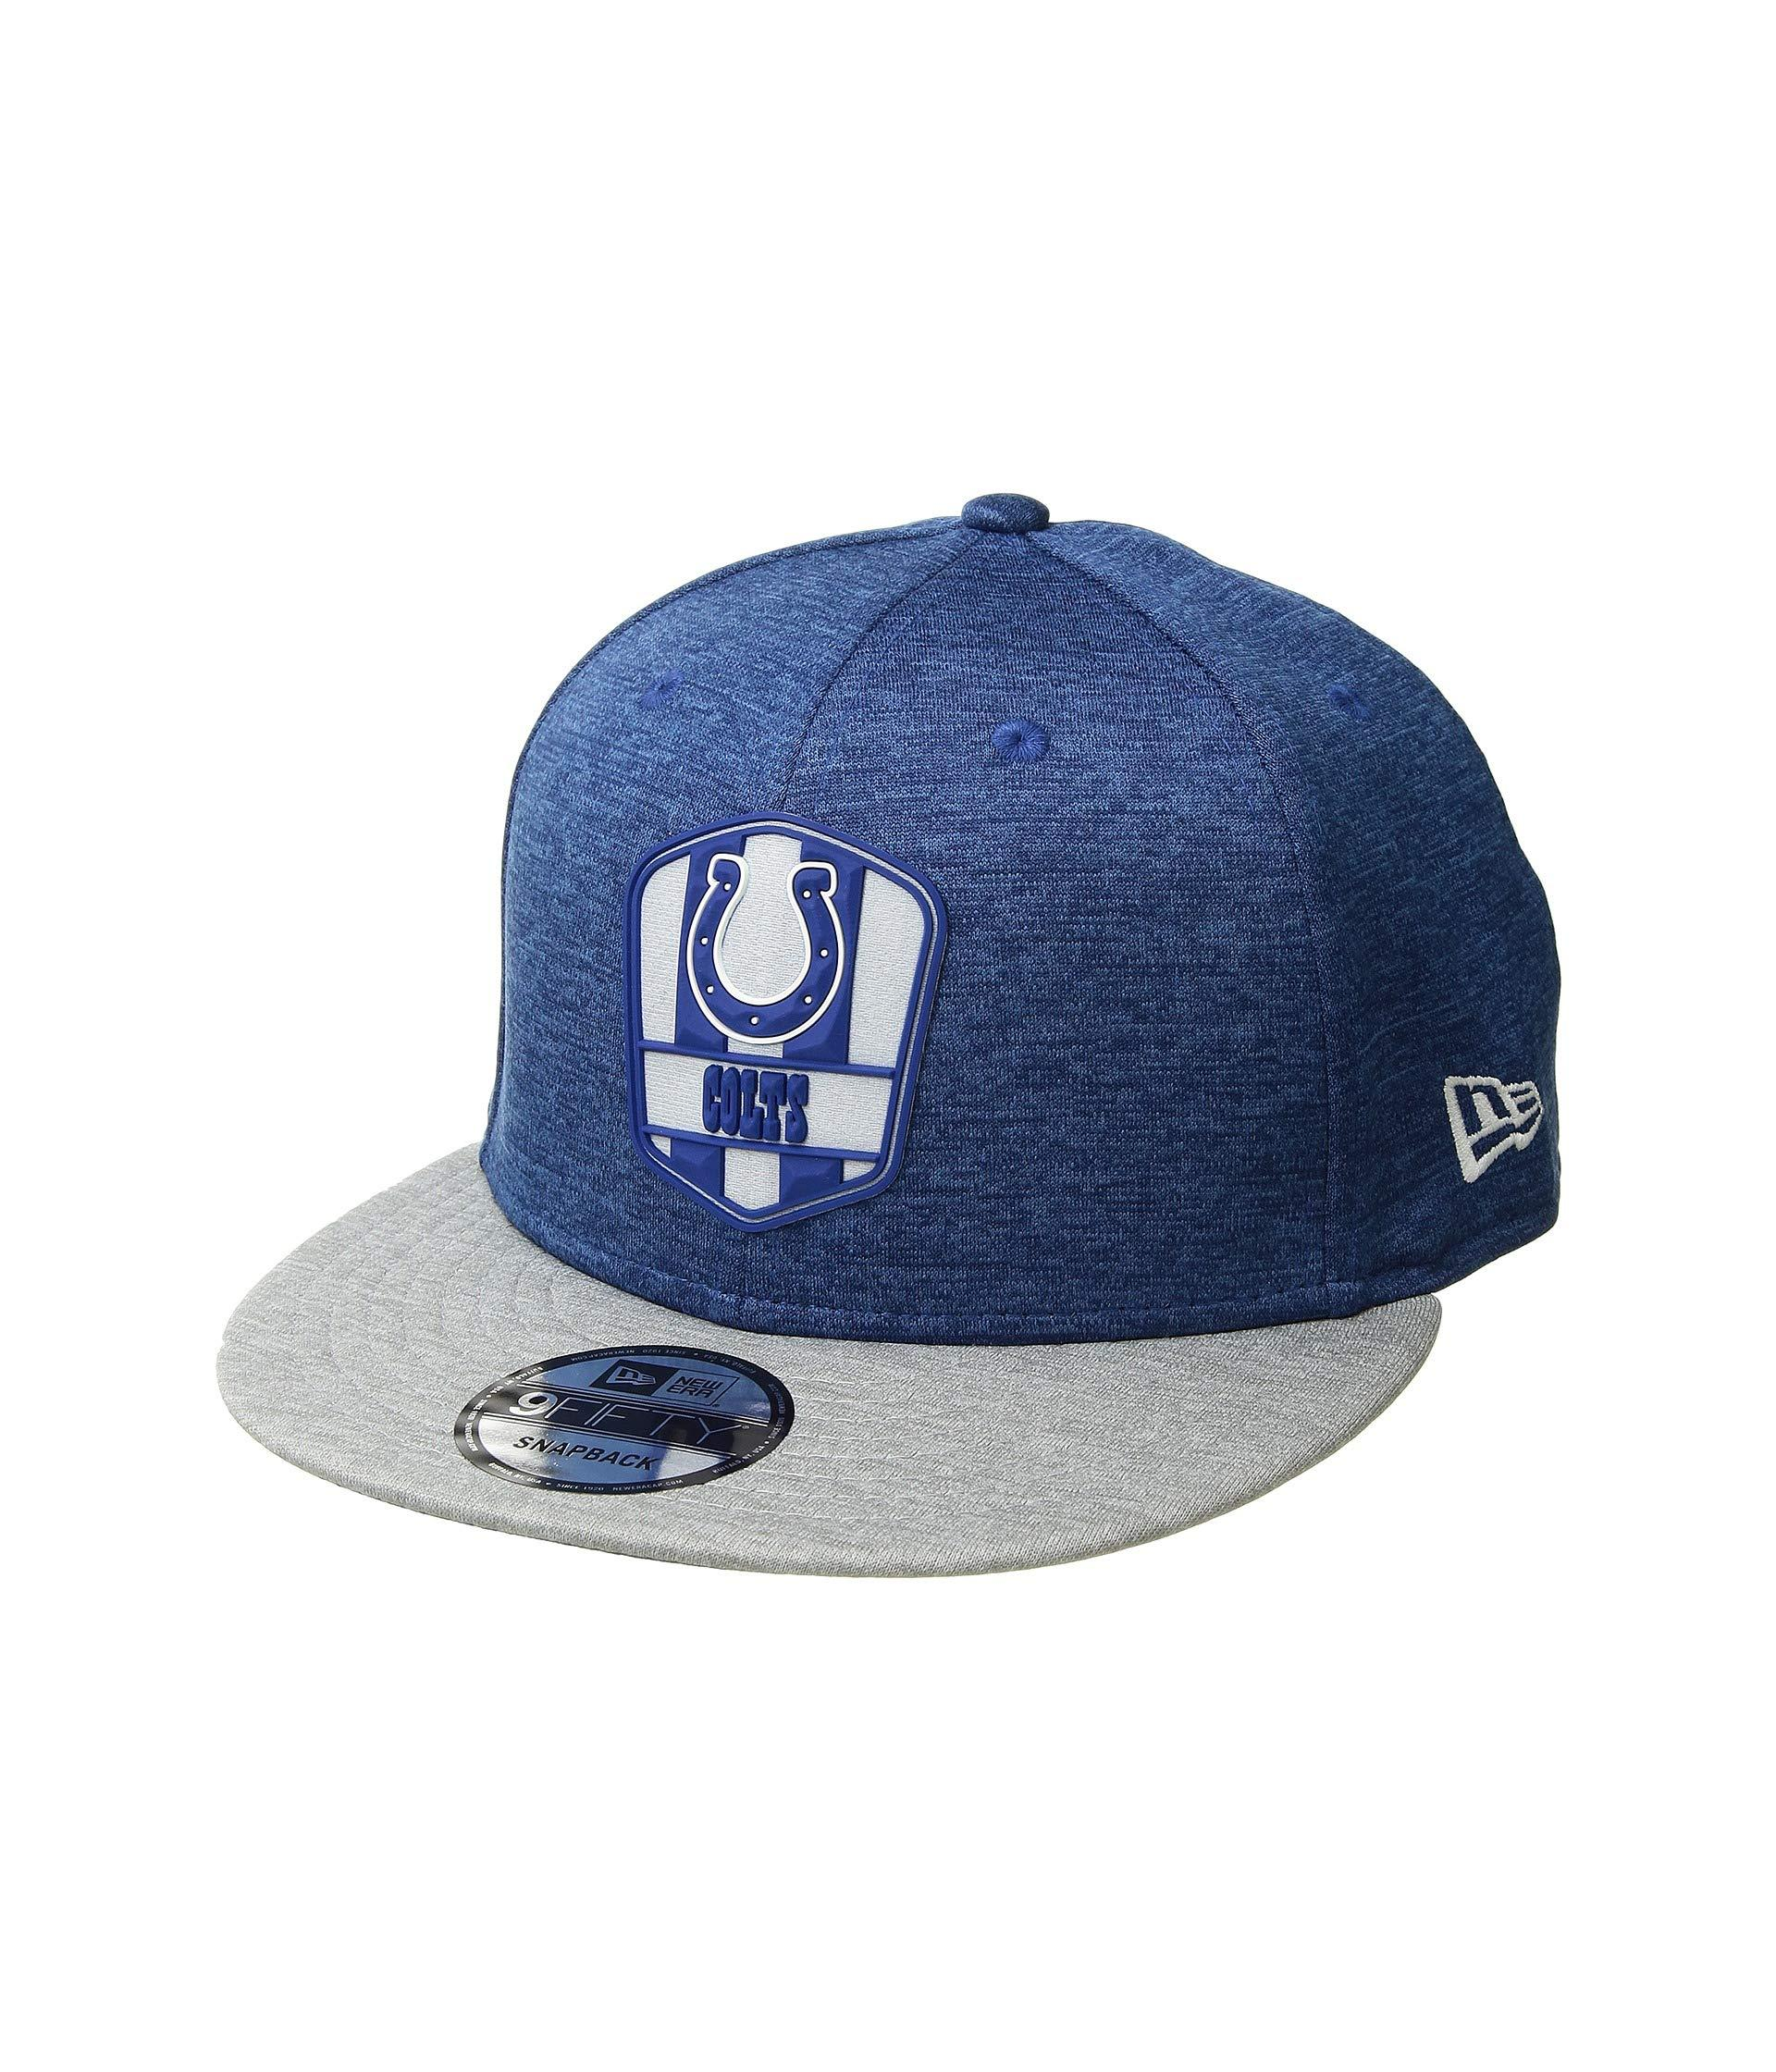 788ed9216bb Lyst - KTZ 9fifty Official Sideline Away Snapback - Indianapolis ...